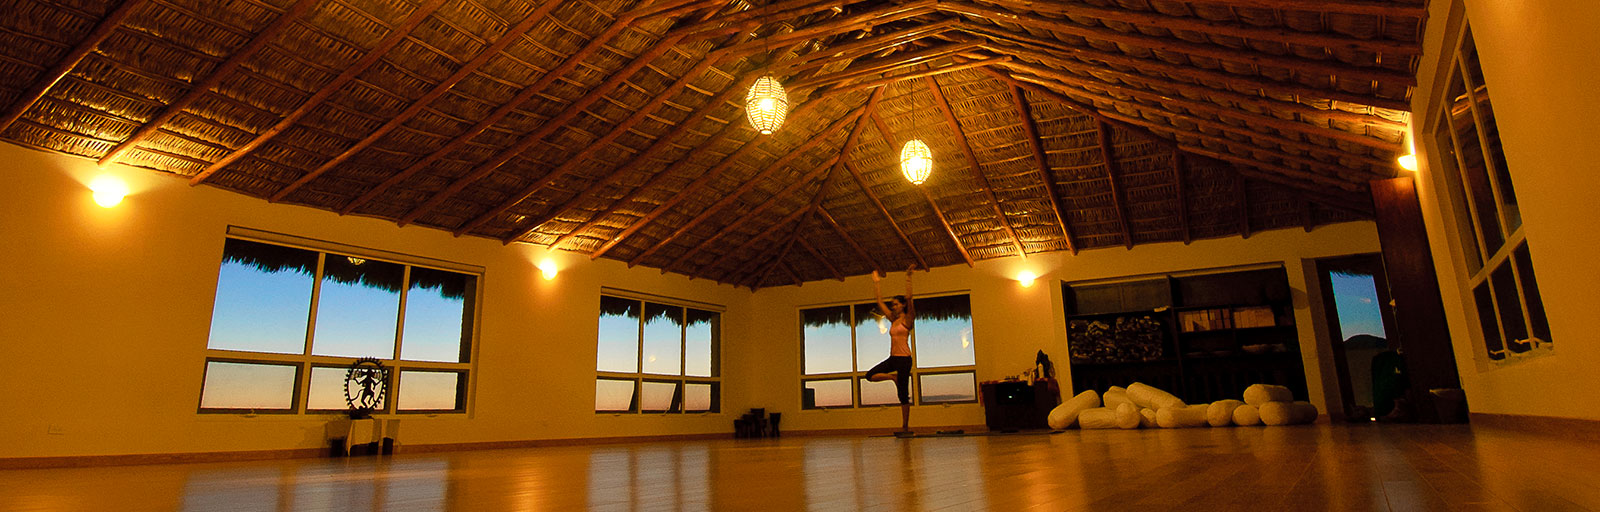 Yoga Studios Tailored To Fit The Changing Rhythms Of Your Practice Prana D